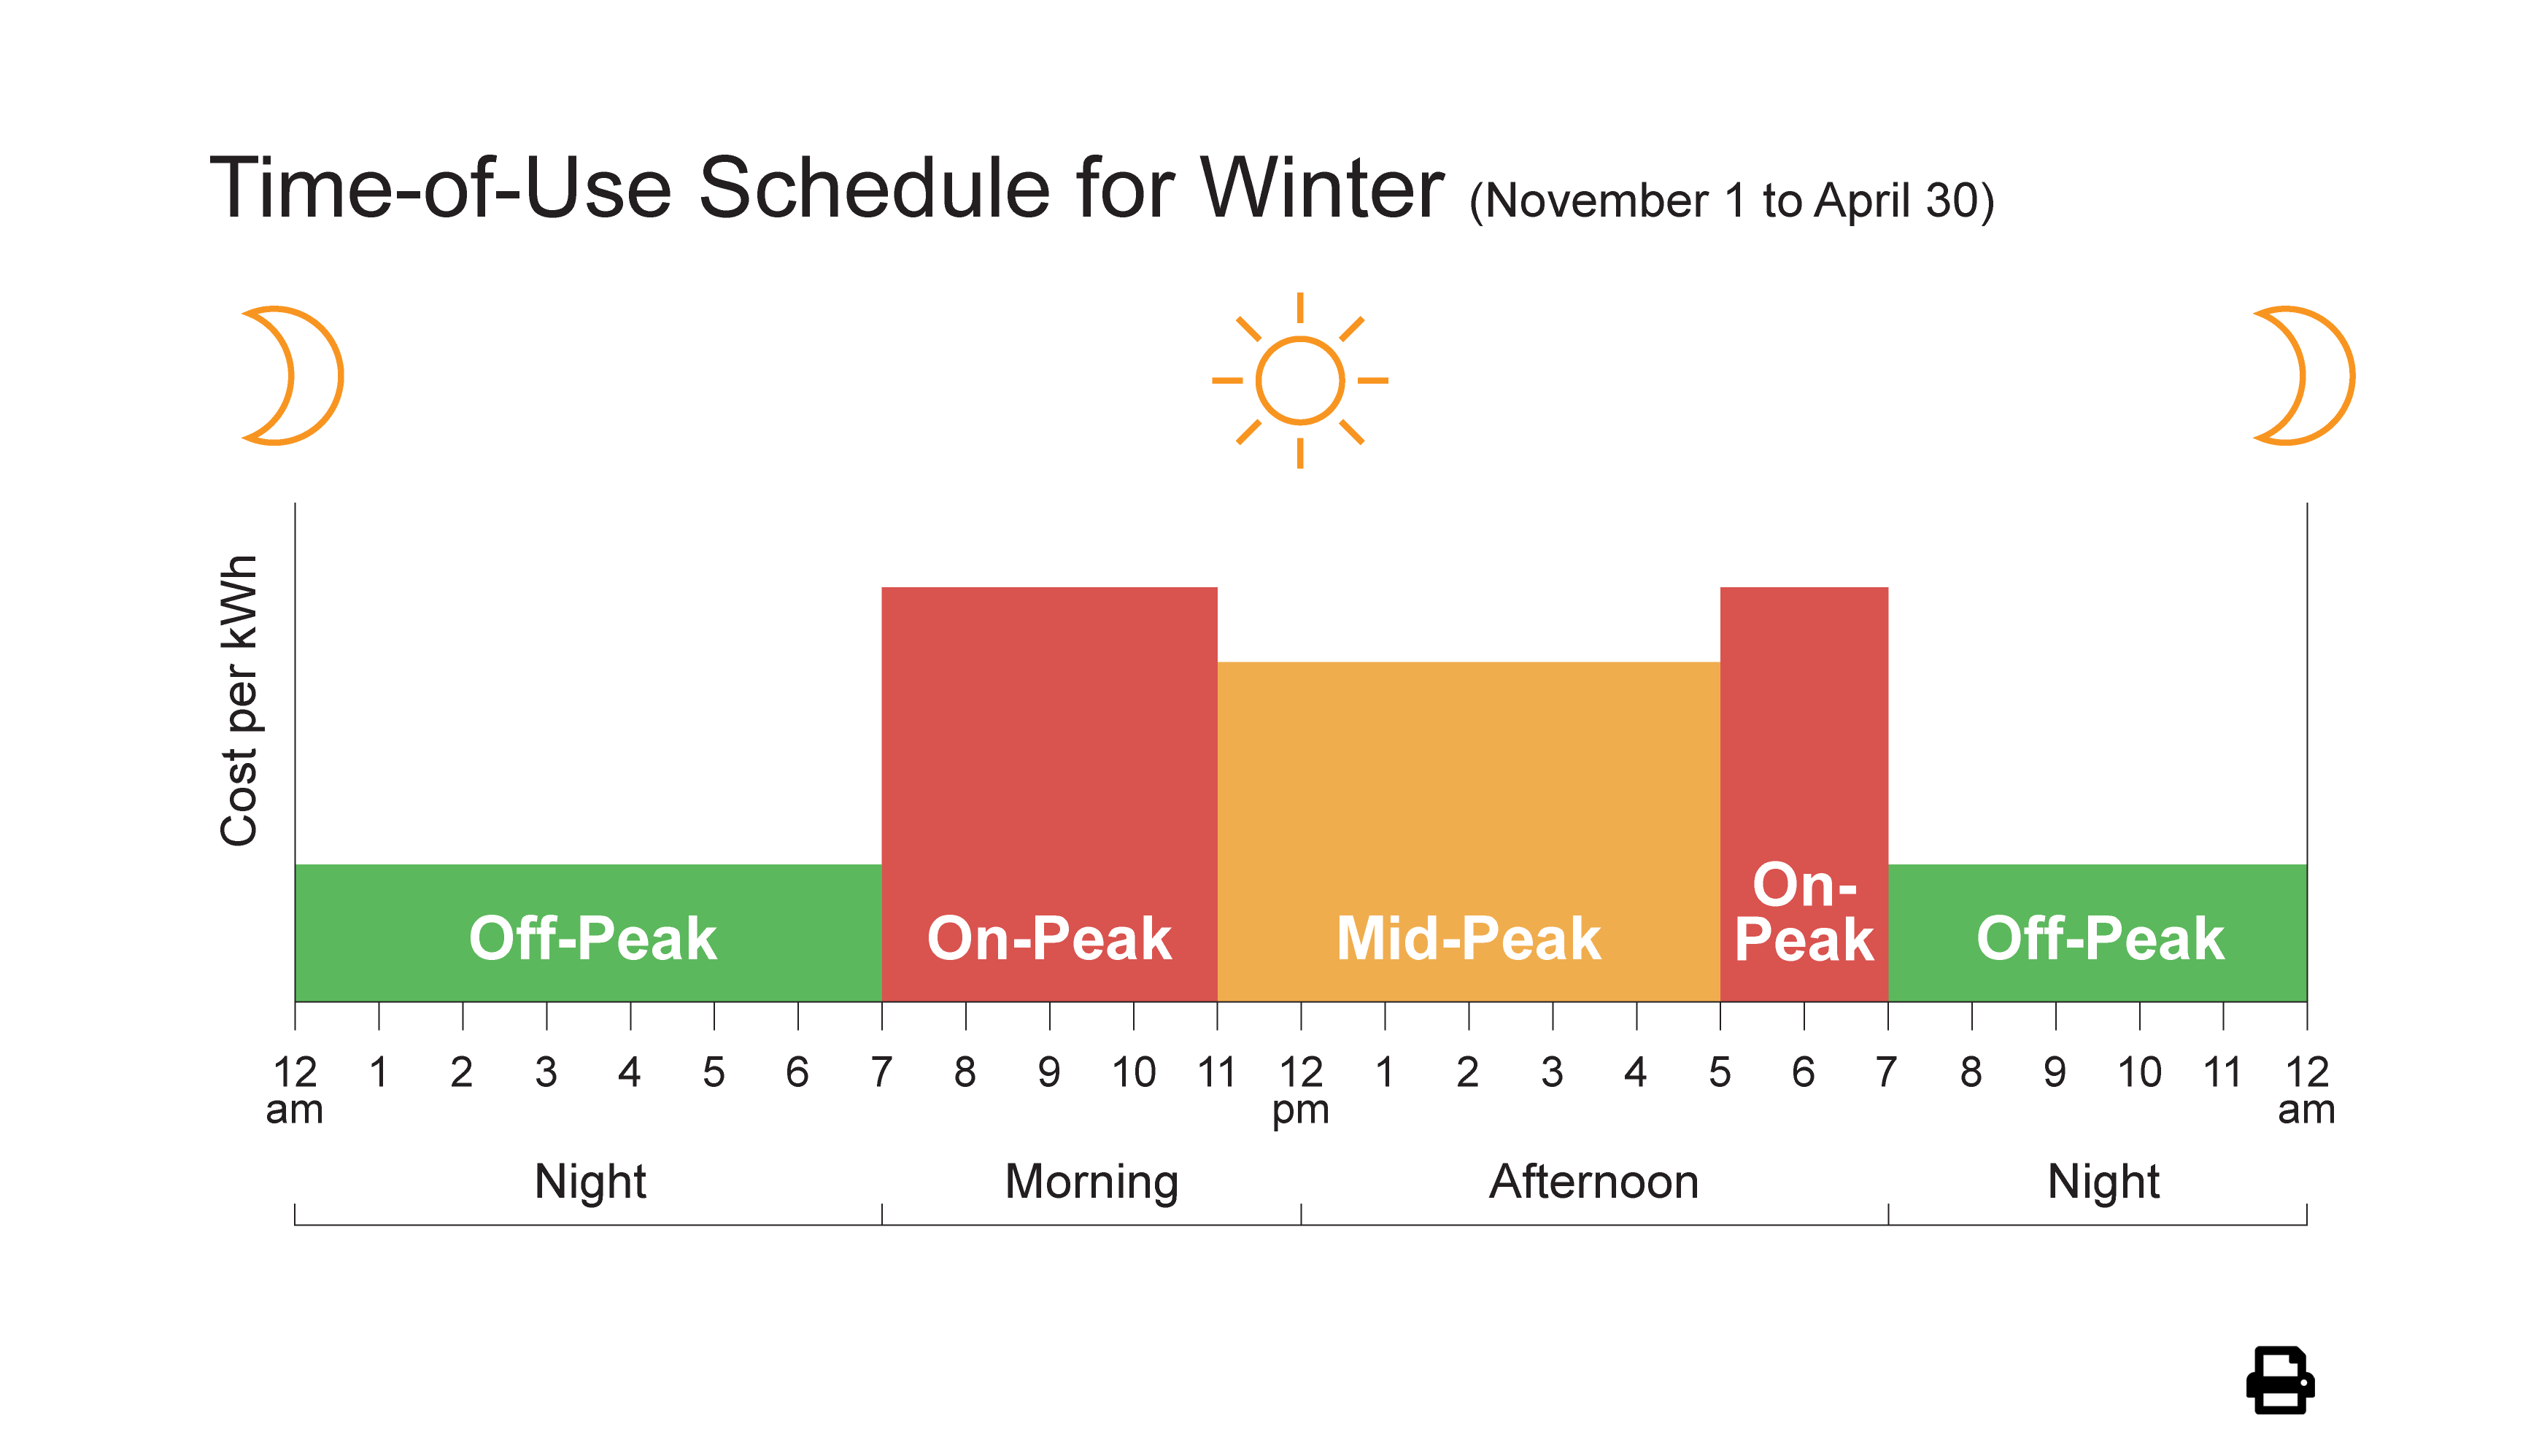 Winter Weekdays (November 1 to April 30)